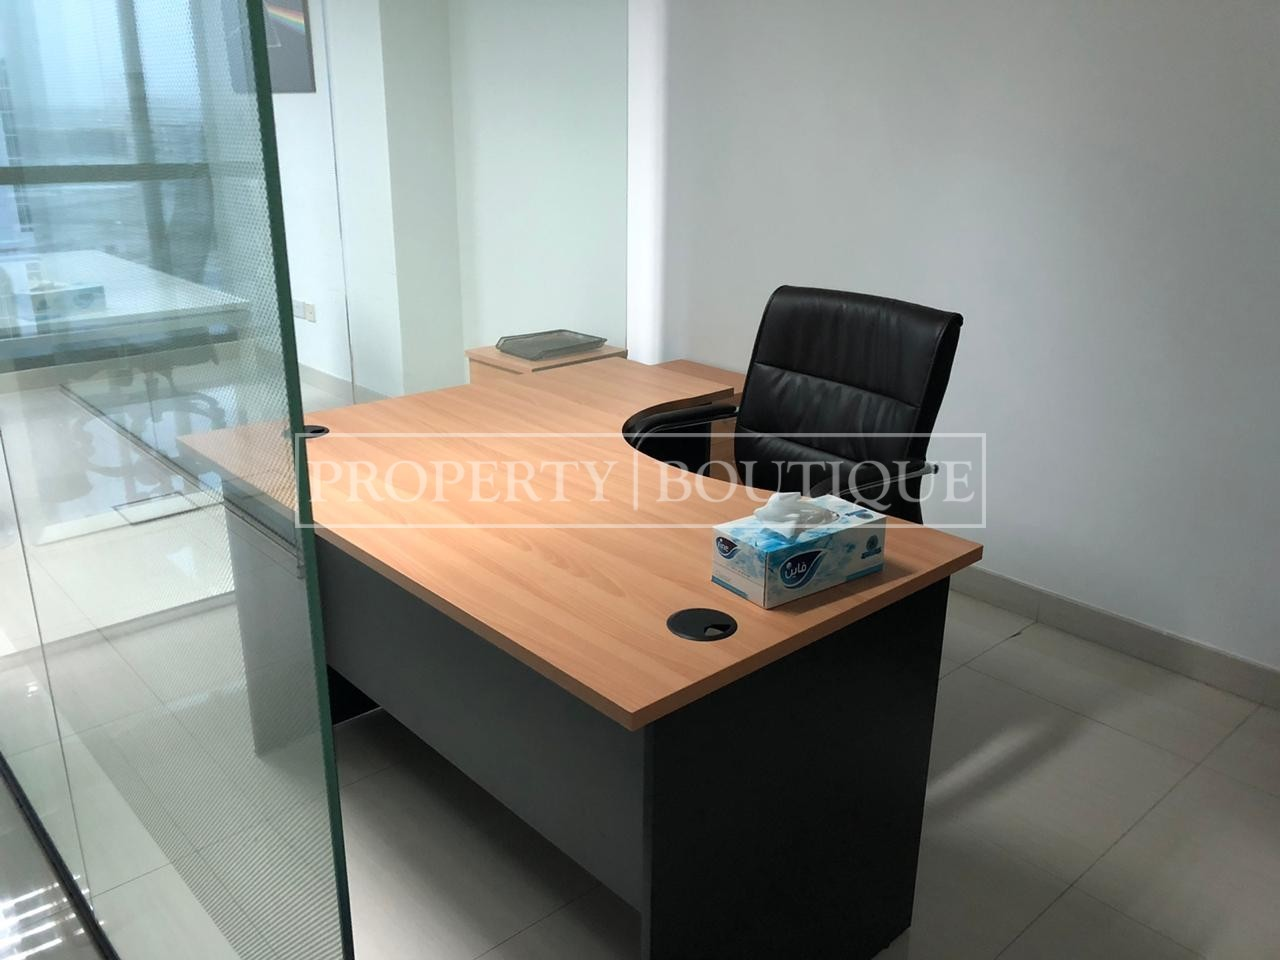 Fitted with partitions | Partially Furnished | JBC4 - Image 3